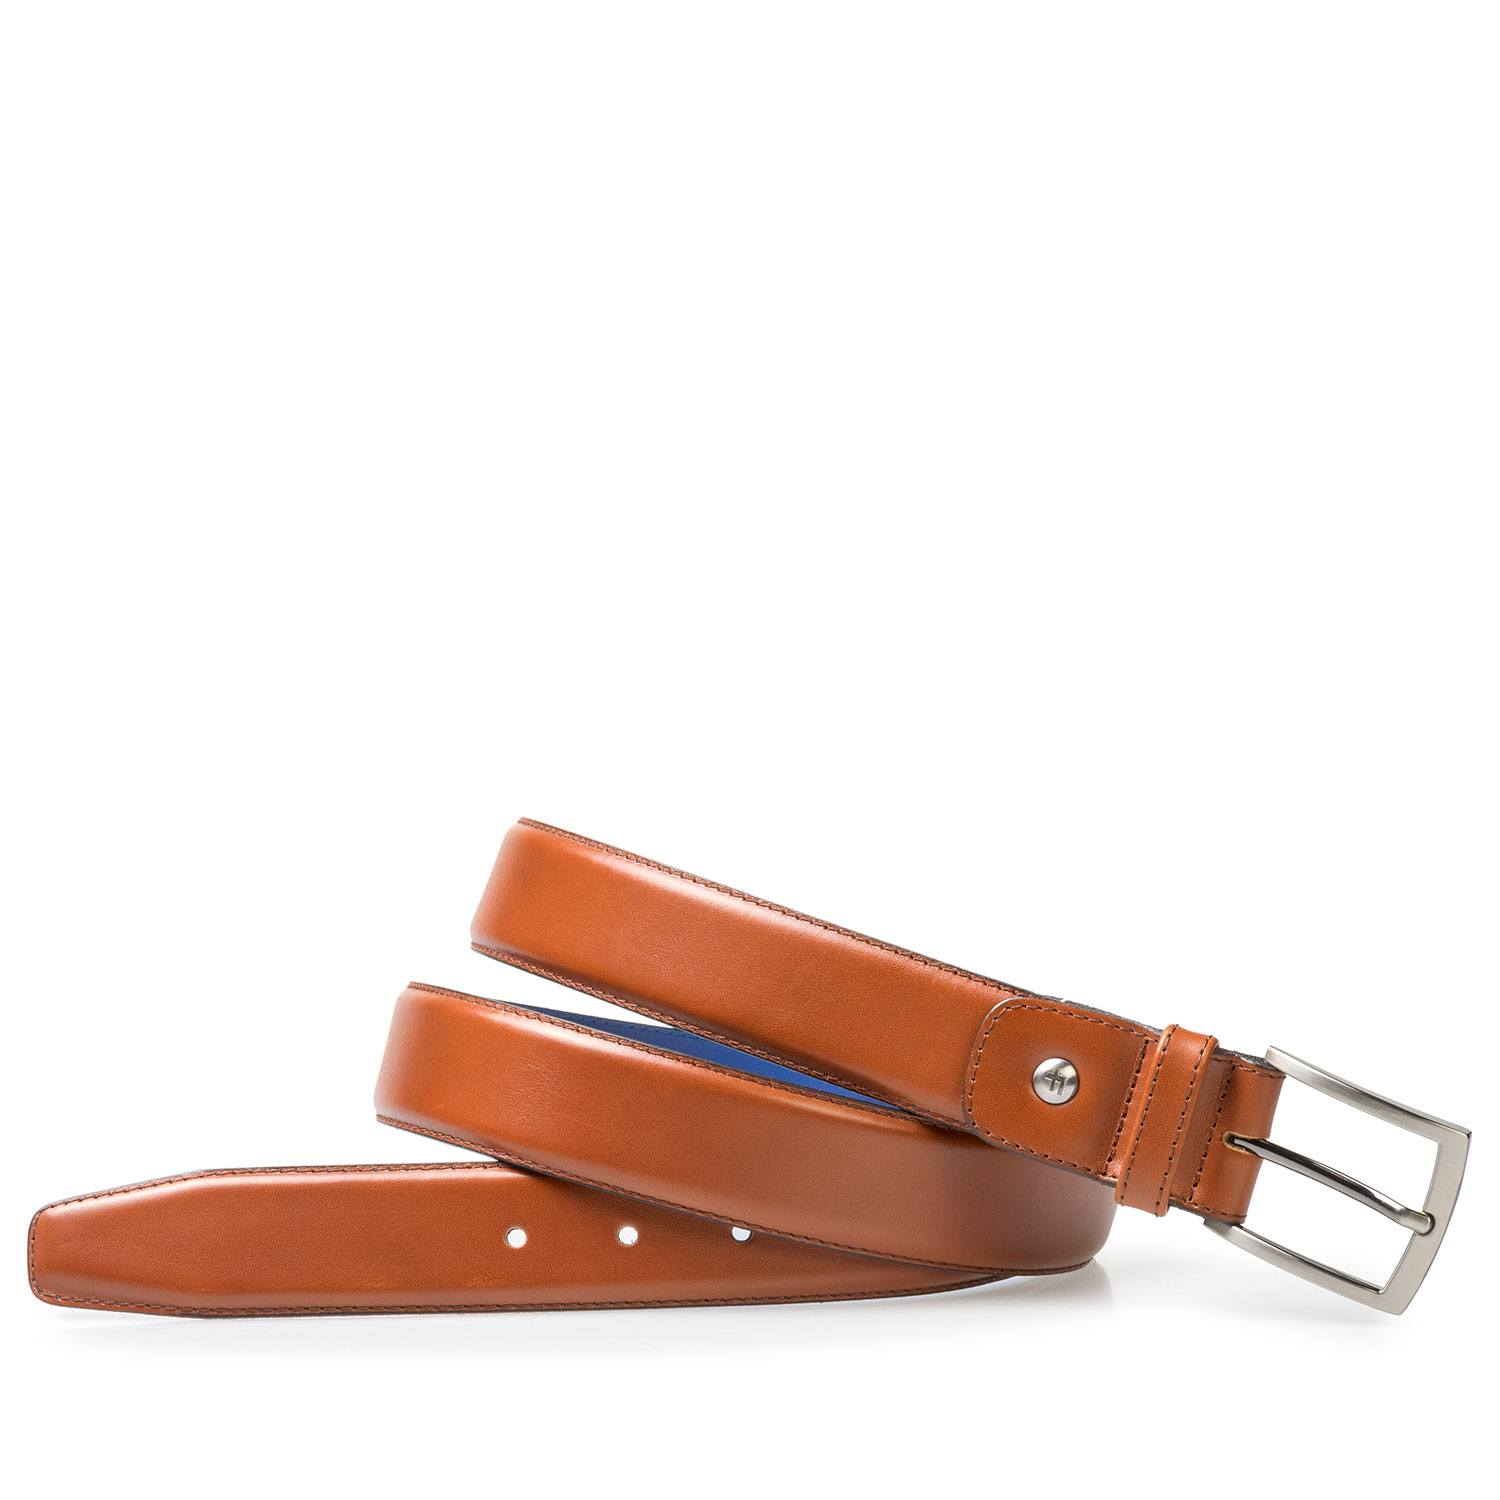 75046/00 - Dark cognac-coloured leather belt